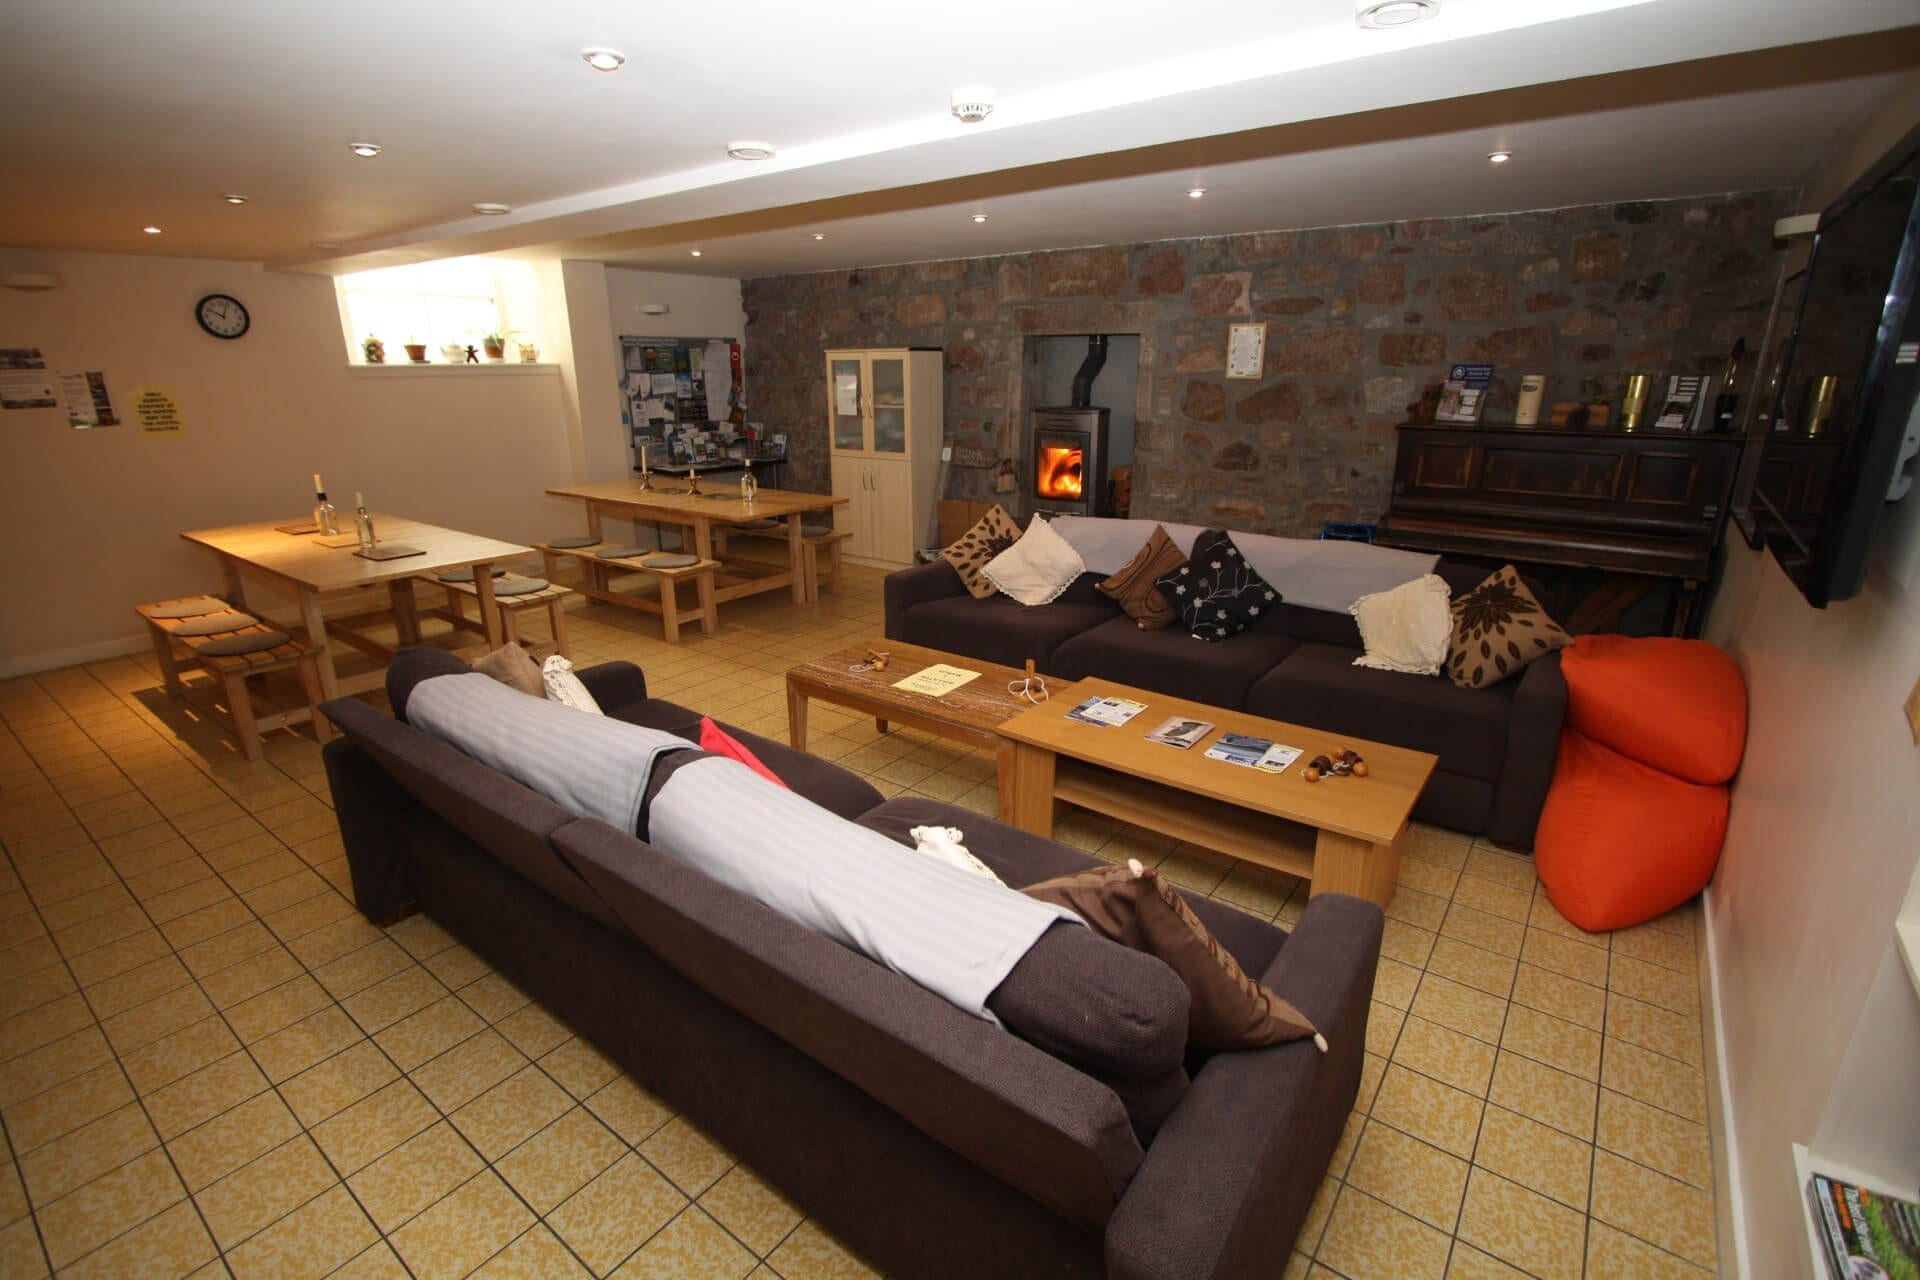 hotels in ballater - Ballater Hostel